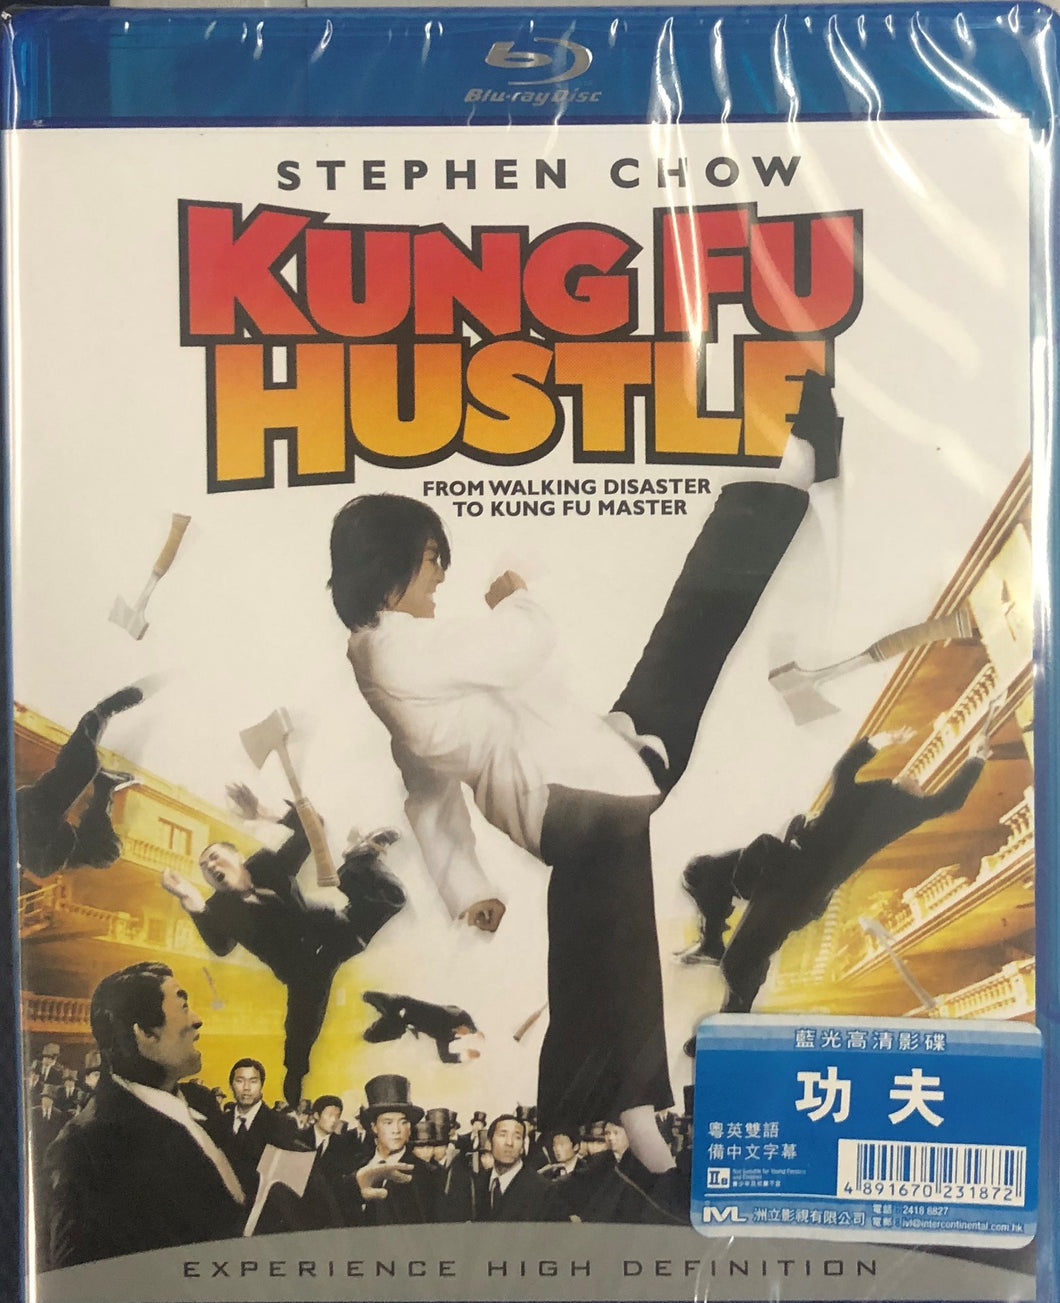 Kung Fu Hustle 功夫 2005 Stephen Chow (BLU-RAY) with English Subtitles (Region Free)